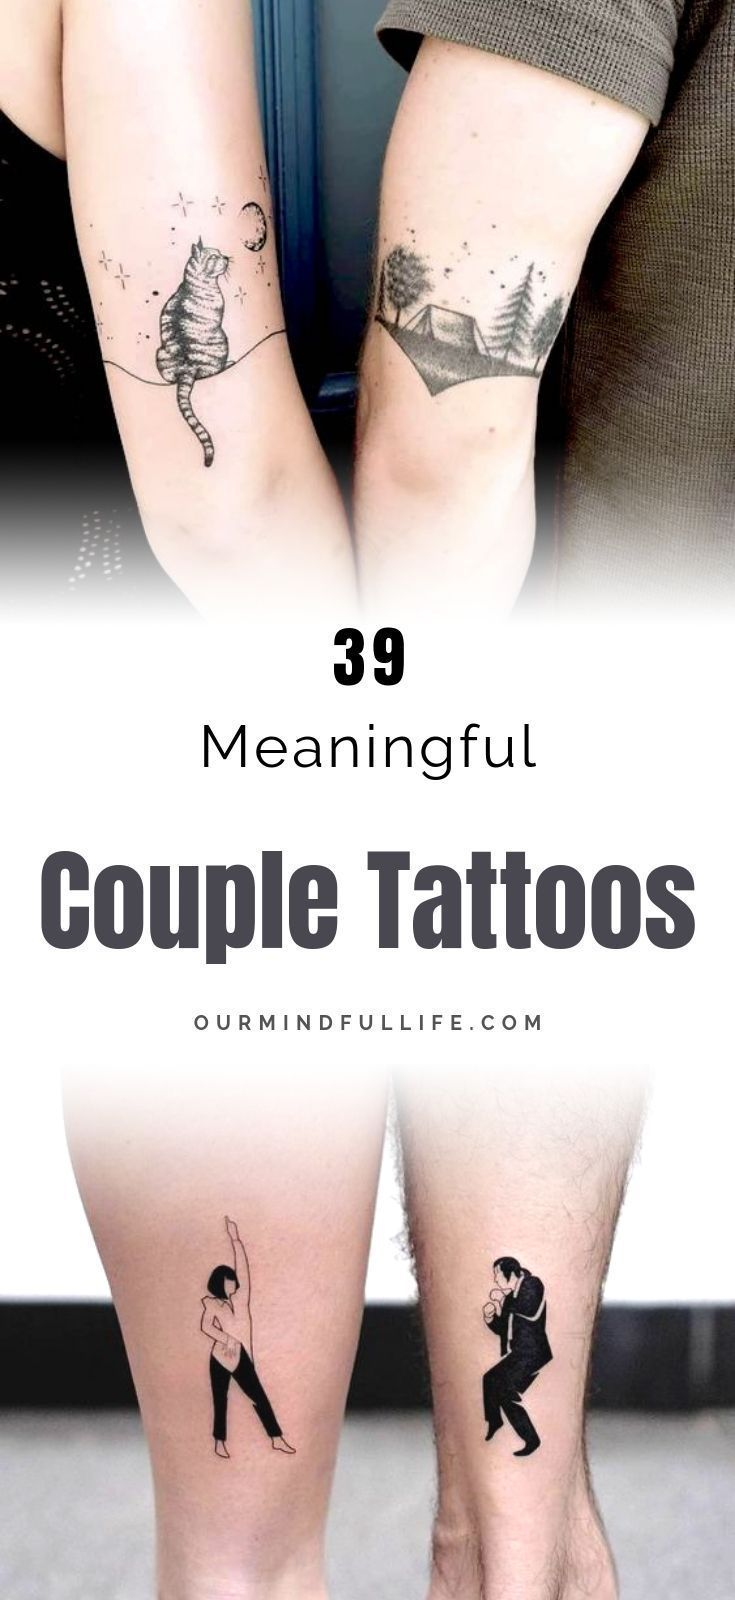 108 Romantic Couple Tattoos To Honor Your Relationship Meaningful Tattoos For Couples Couple Tattoos Unique Married Couple Tattoos Hd wallpaper tattoo couple